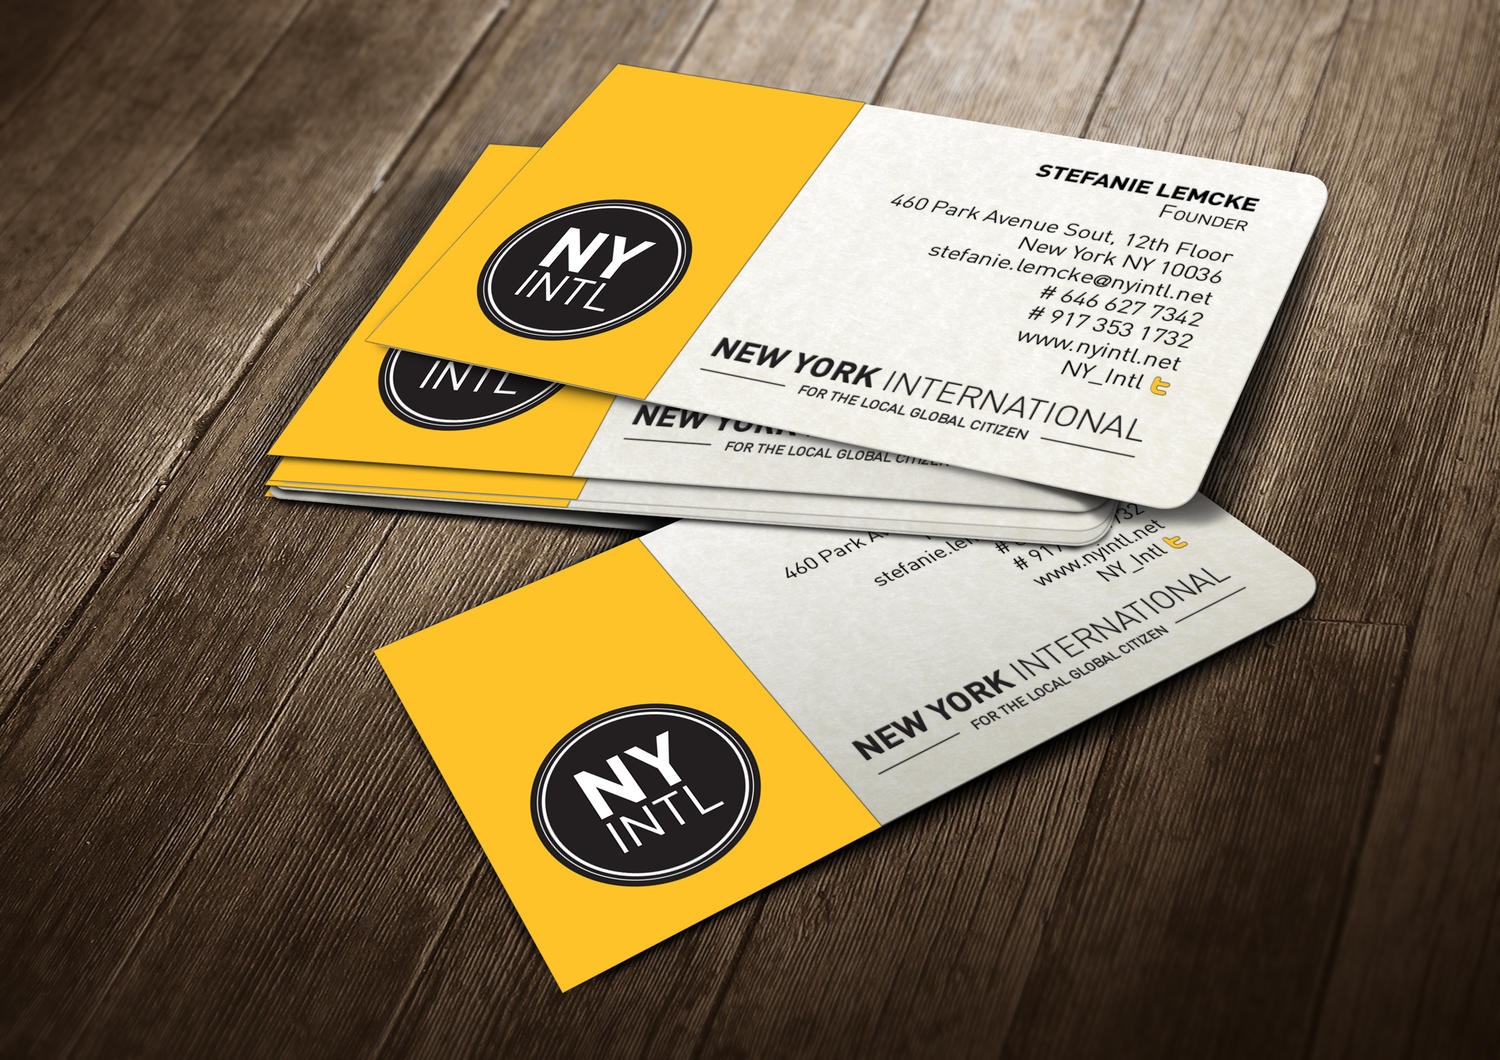 Professional business card design by madridnyc on envato studio professional business card design colourmoves Image collections